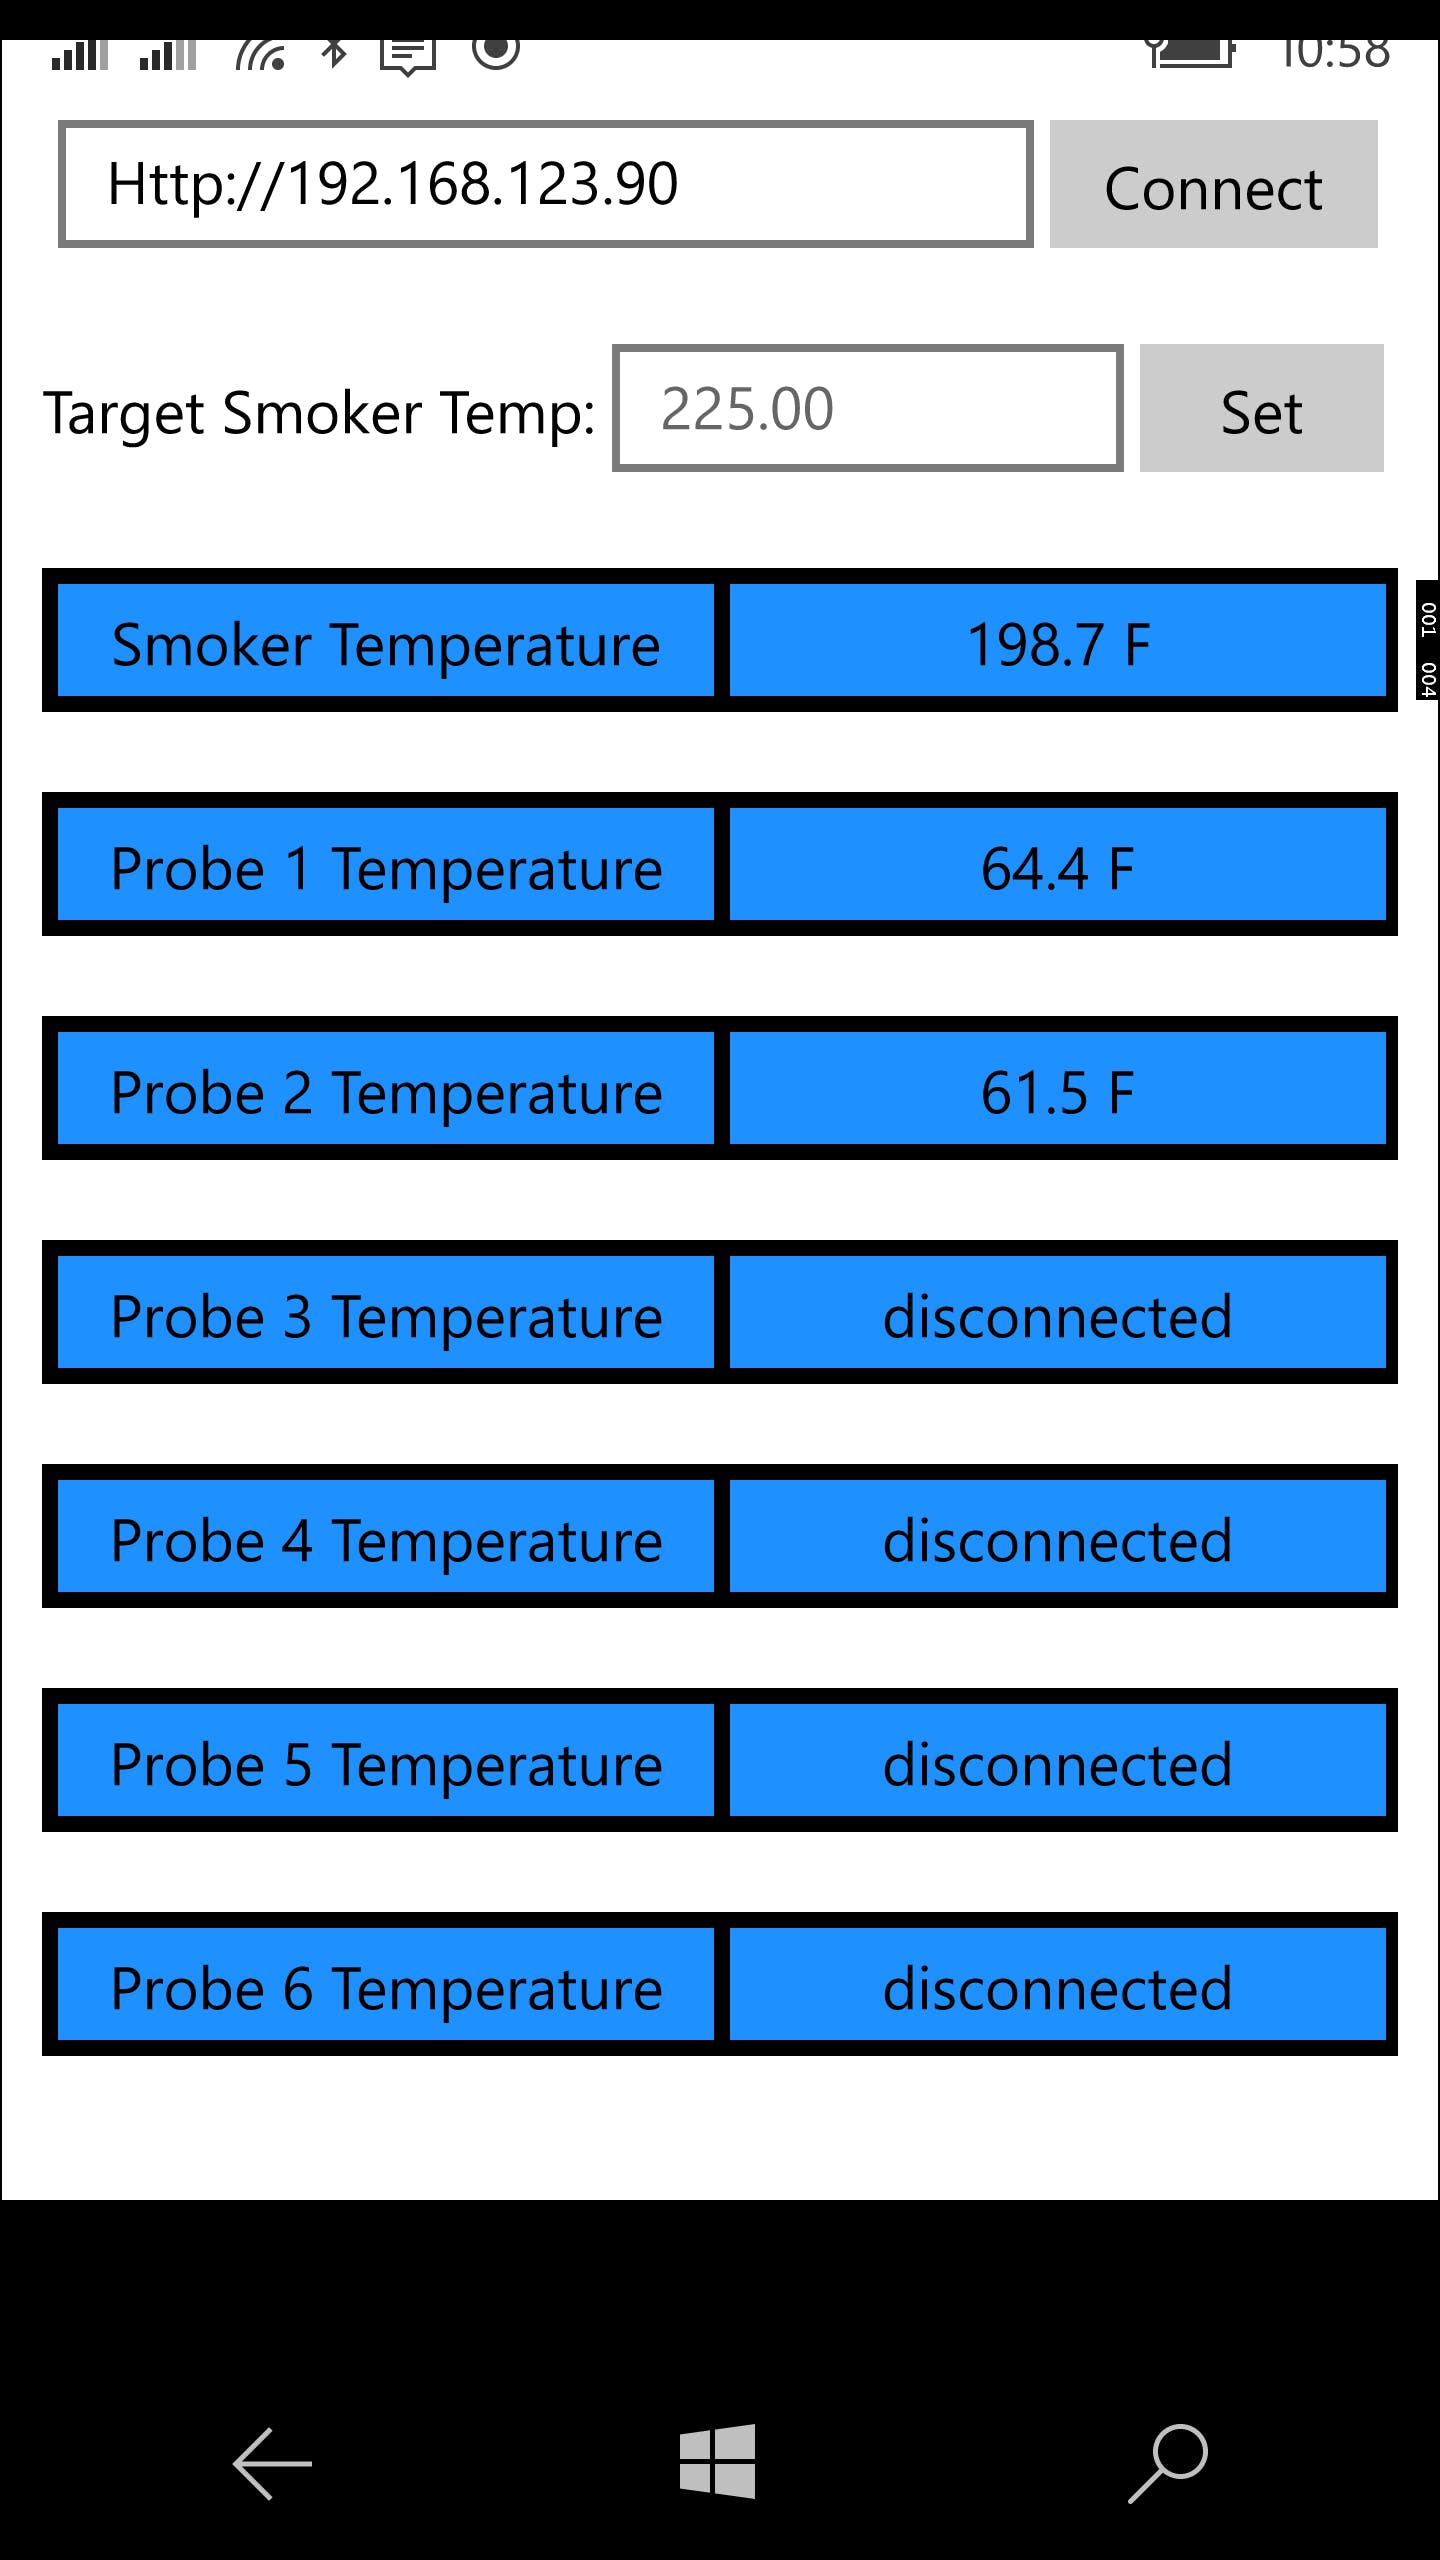 Smokin Hot!, The universal app for monitoring the smoker controller. The smoker temperature is color coded to show if the temperature is within 5 degrees of target.